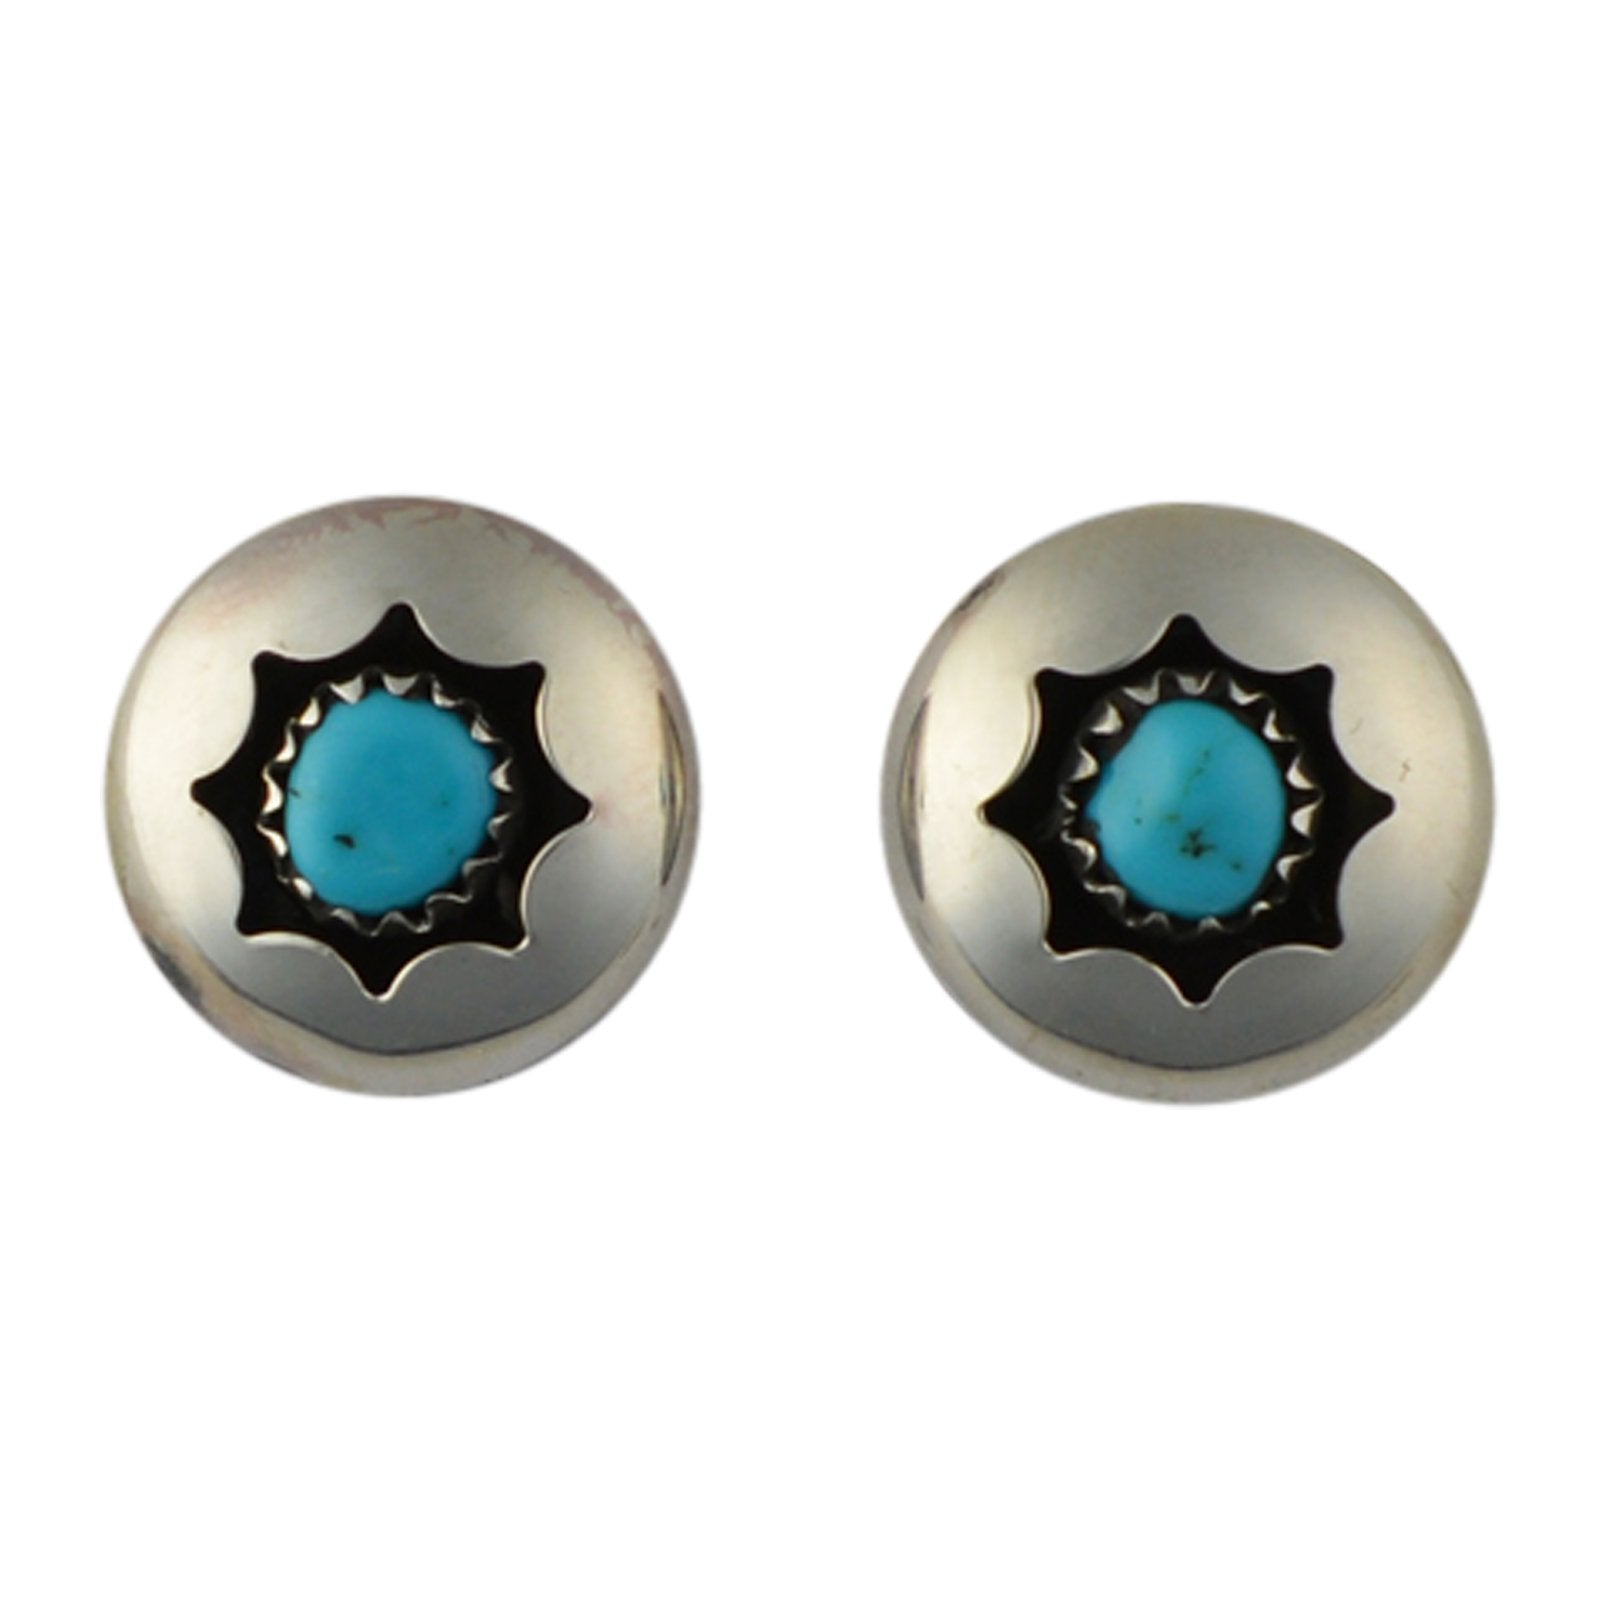 Esther White Turquoise Shadow Box Post Earrings Navajo Sterling Silver - Turquoise925